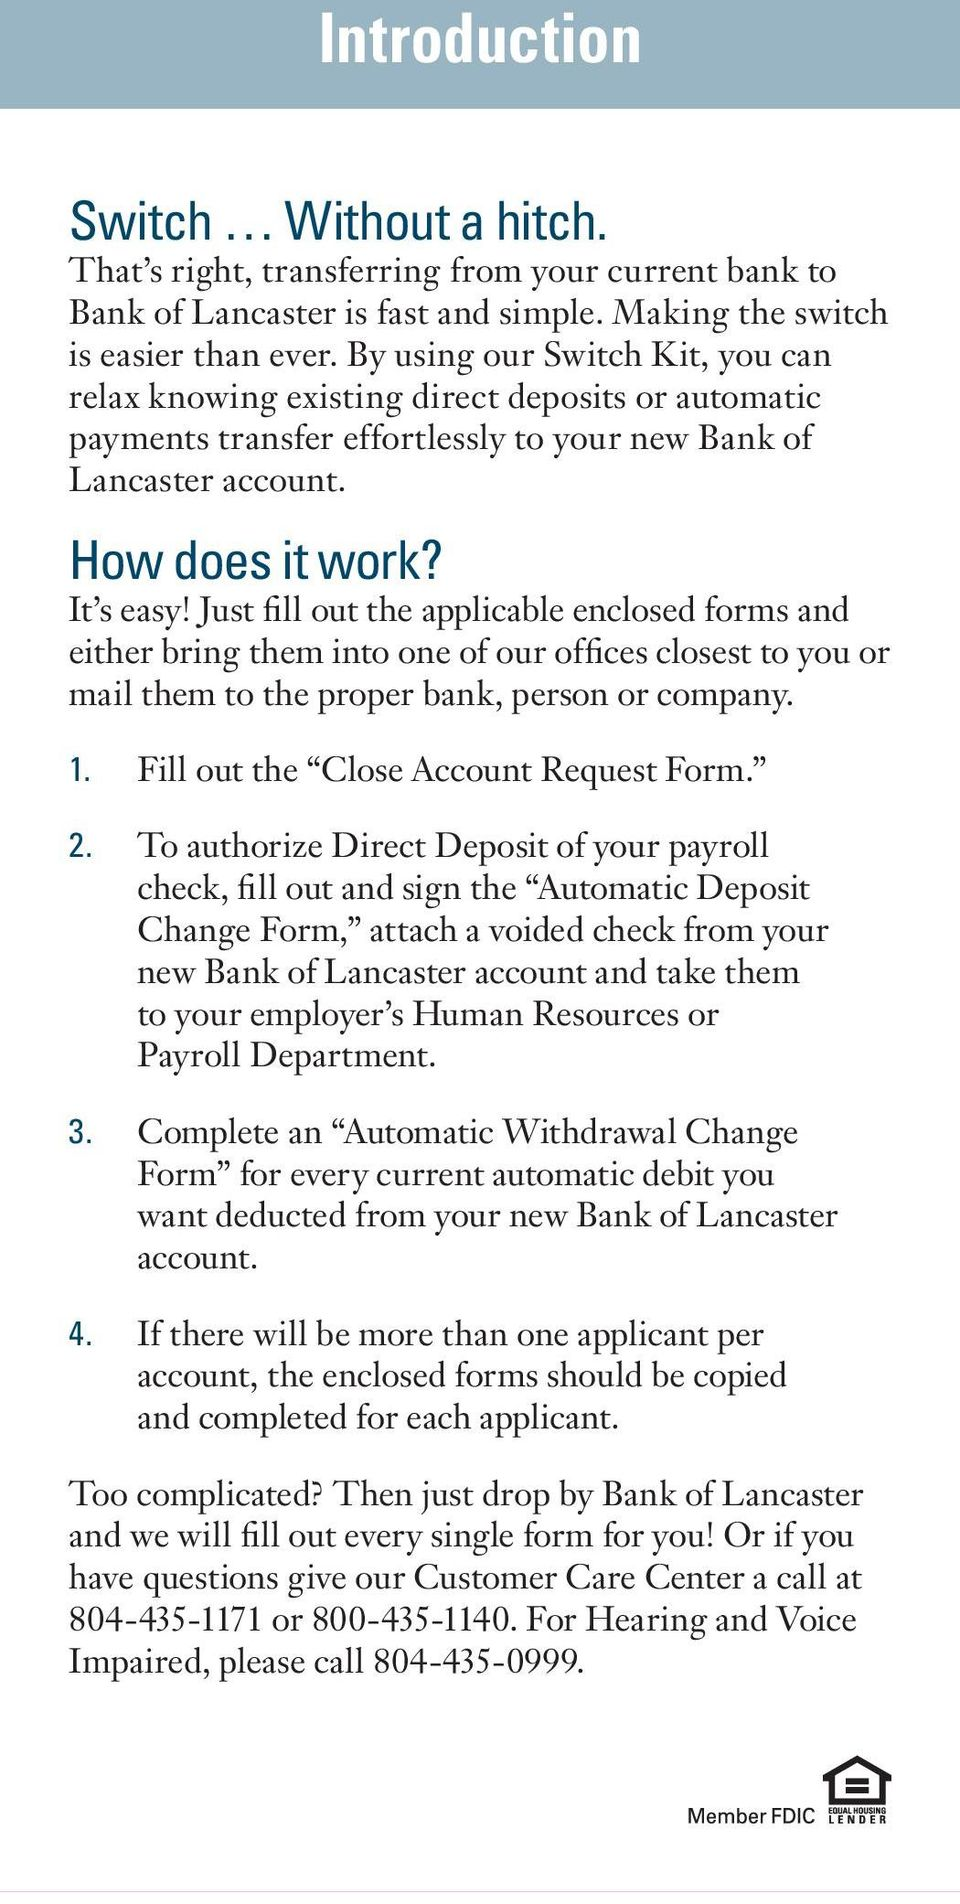 Just fill out the applicable enclosed forms and either bring them into one of our offices closest to you or mail them to the proper bank, person or company. 1. Fill out the Close Account Request Form.